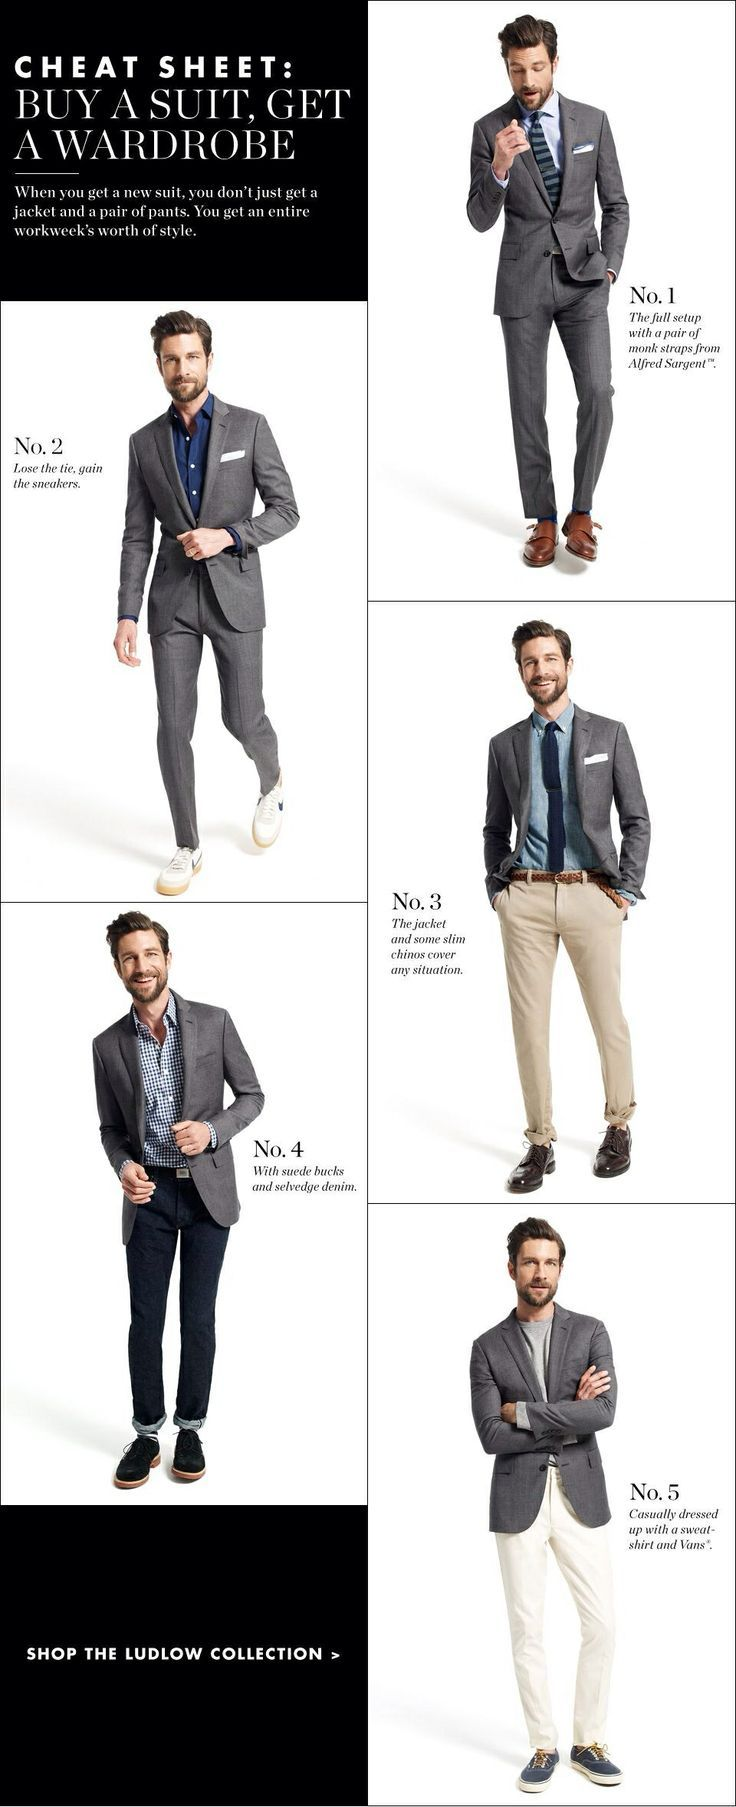 Learn To Create 5 Different Styles With The Same Suit Using Different Combinations Of Shirts